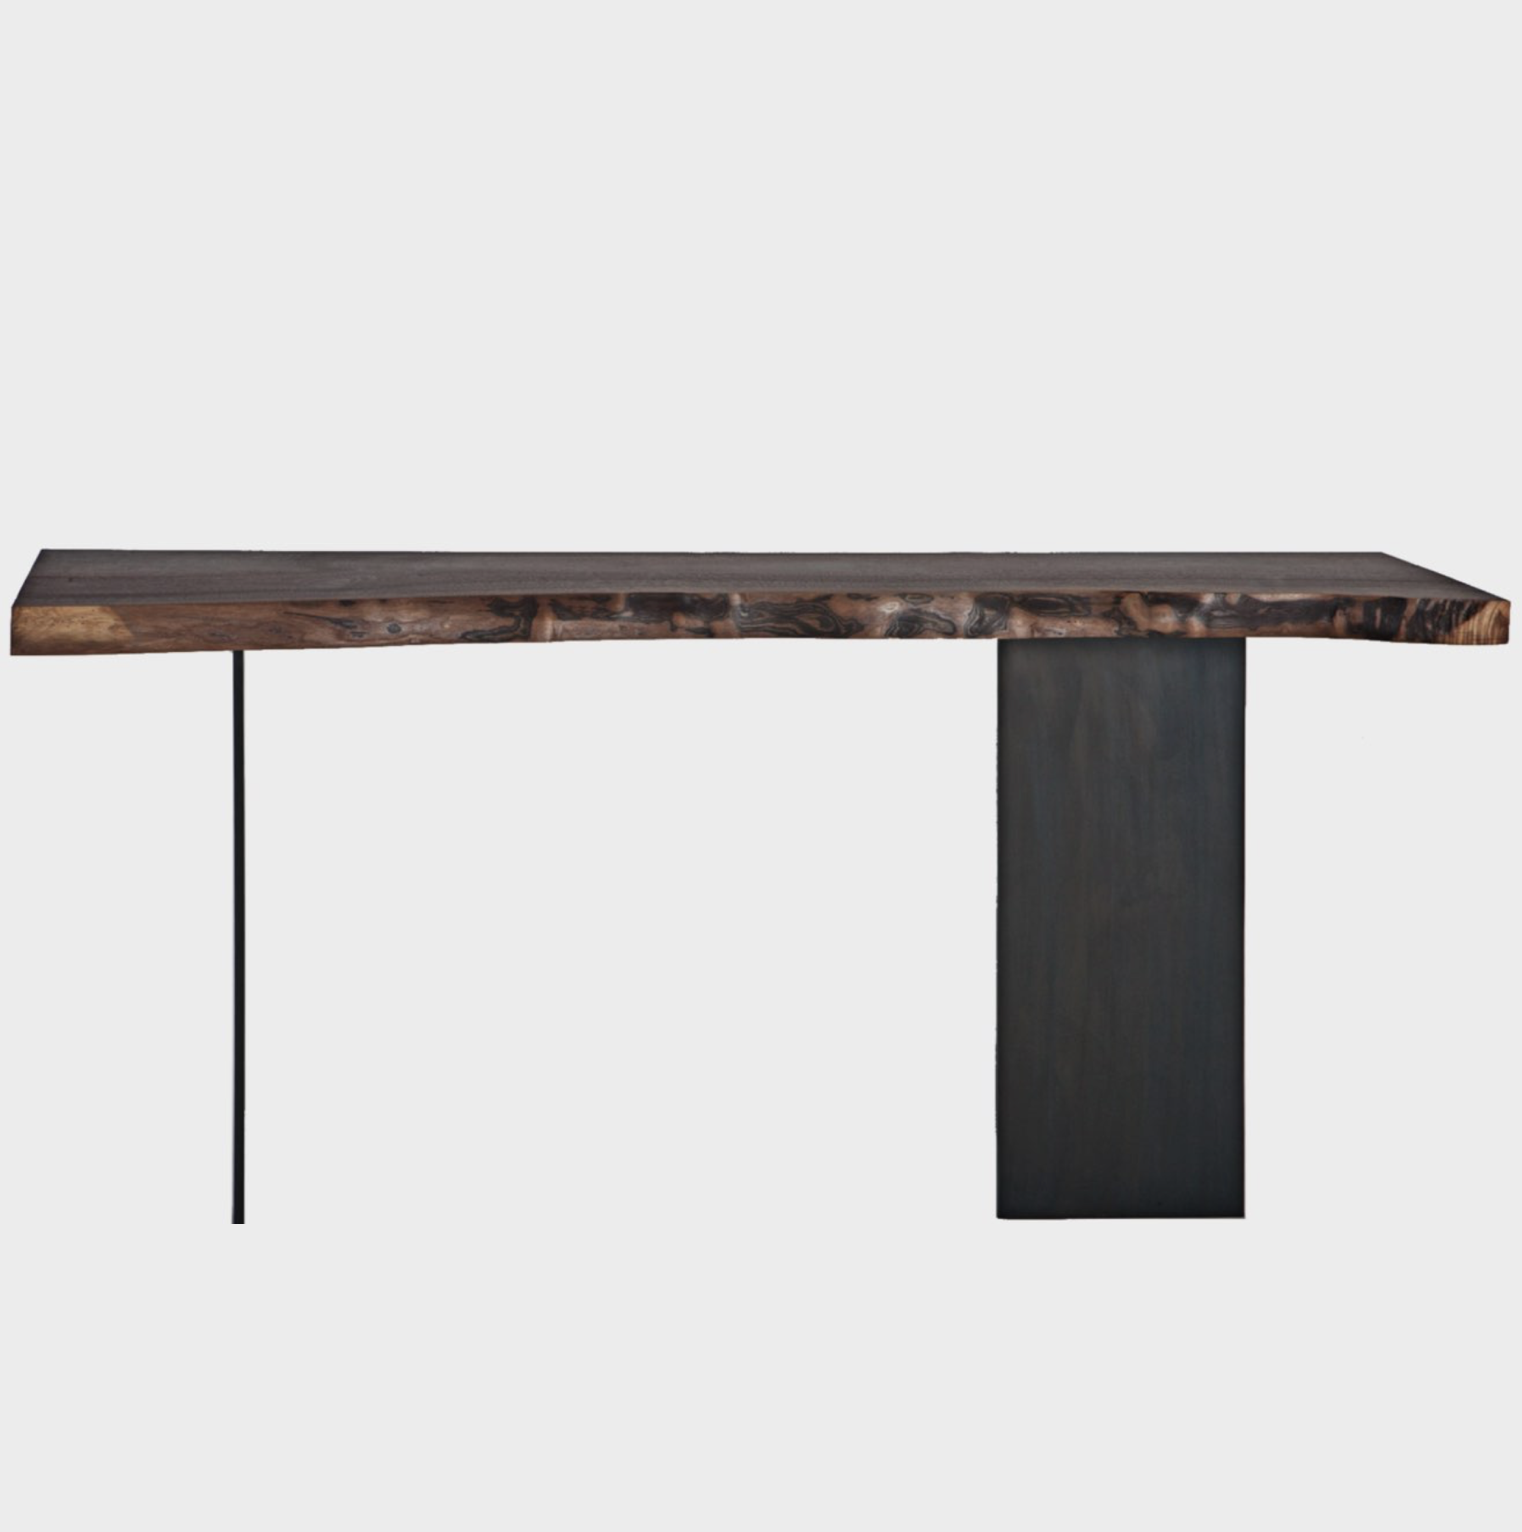 Aguirre Design - Walnut and Blackened Steel Console